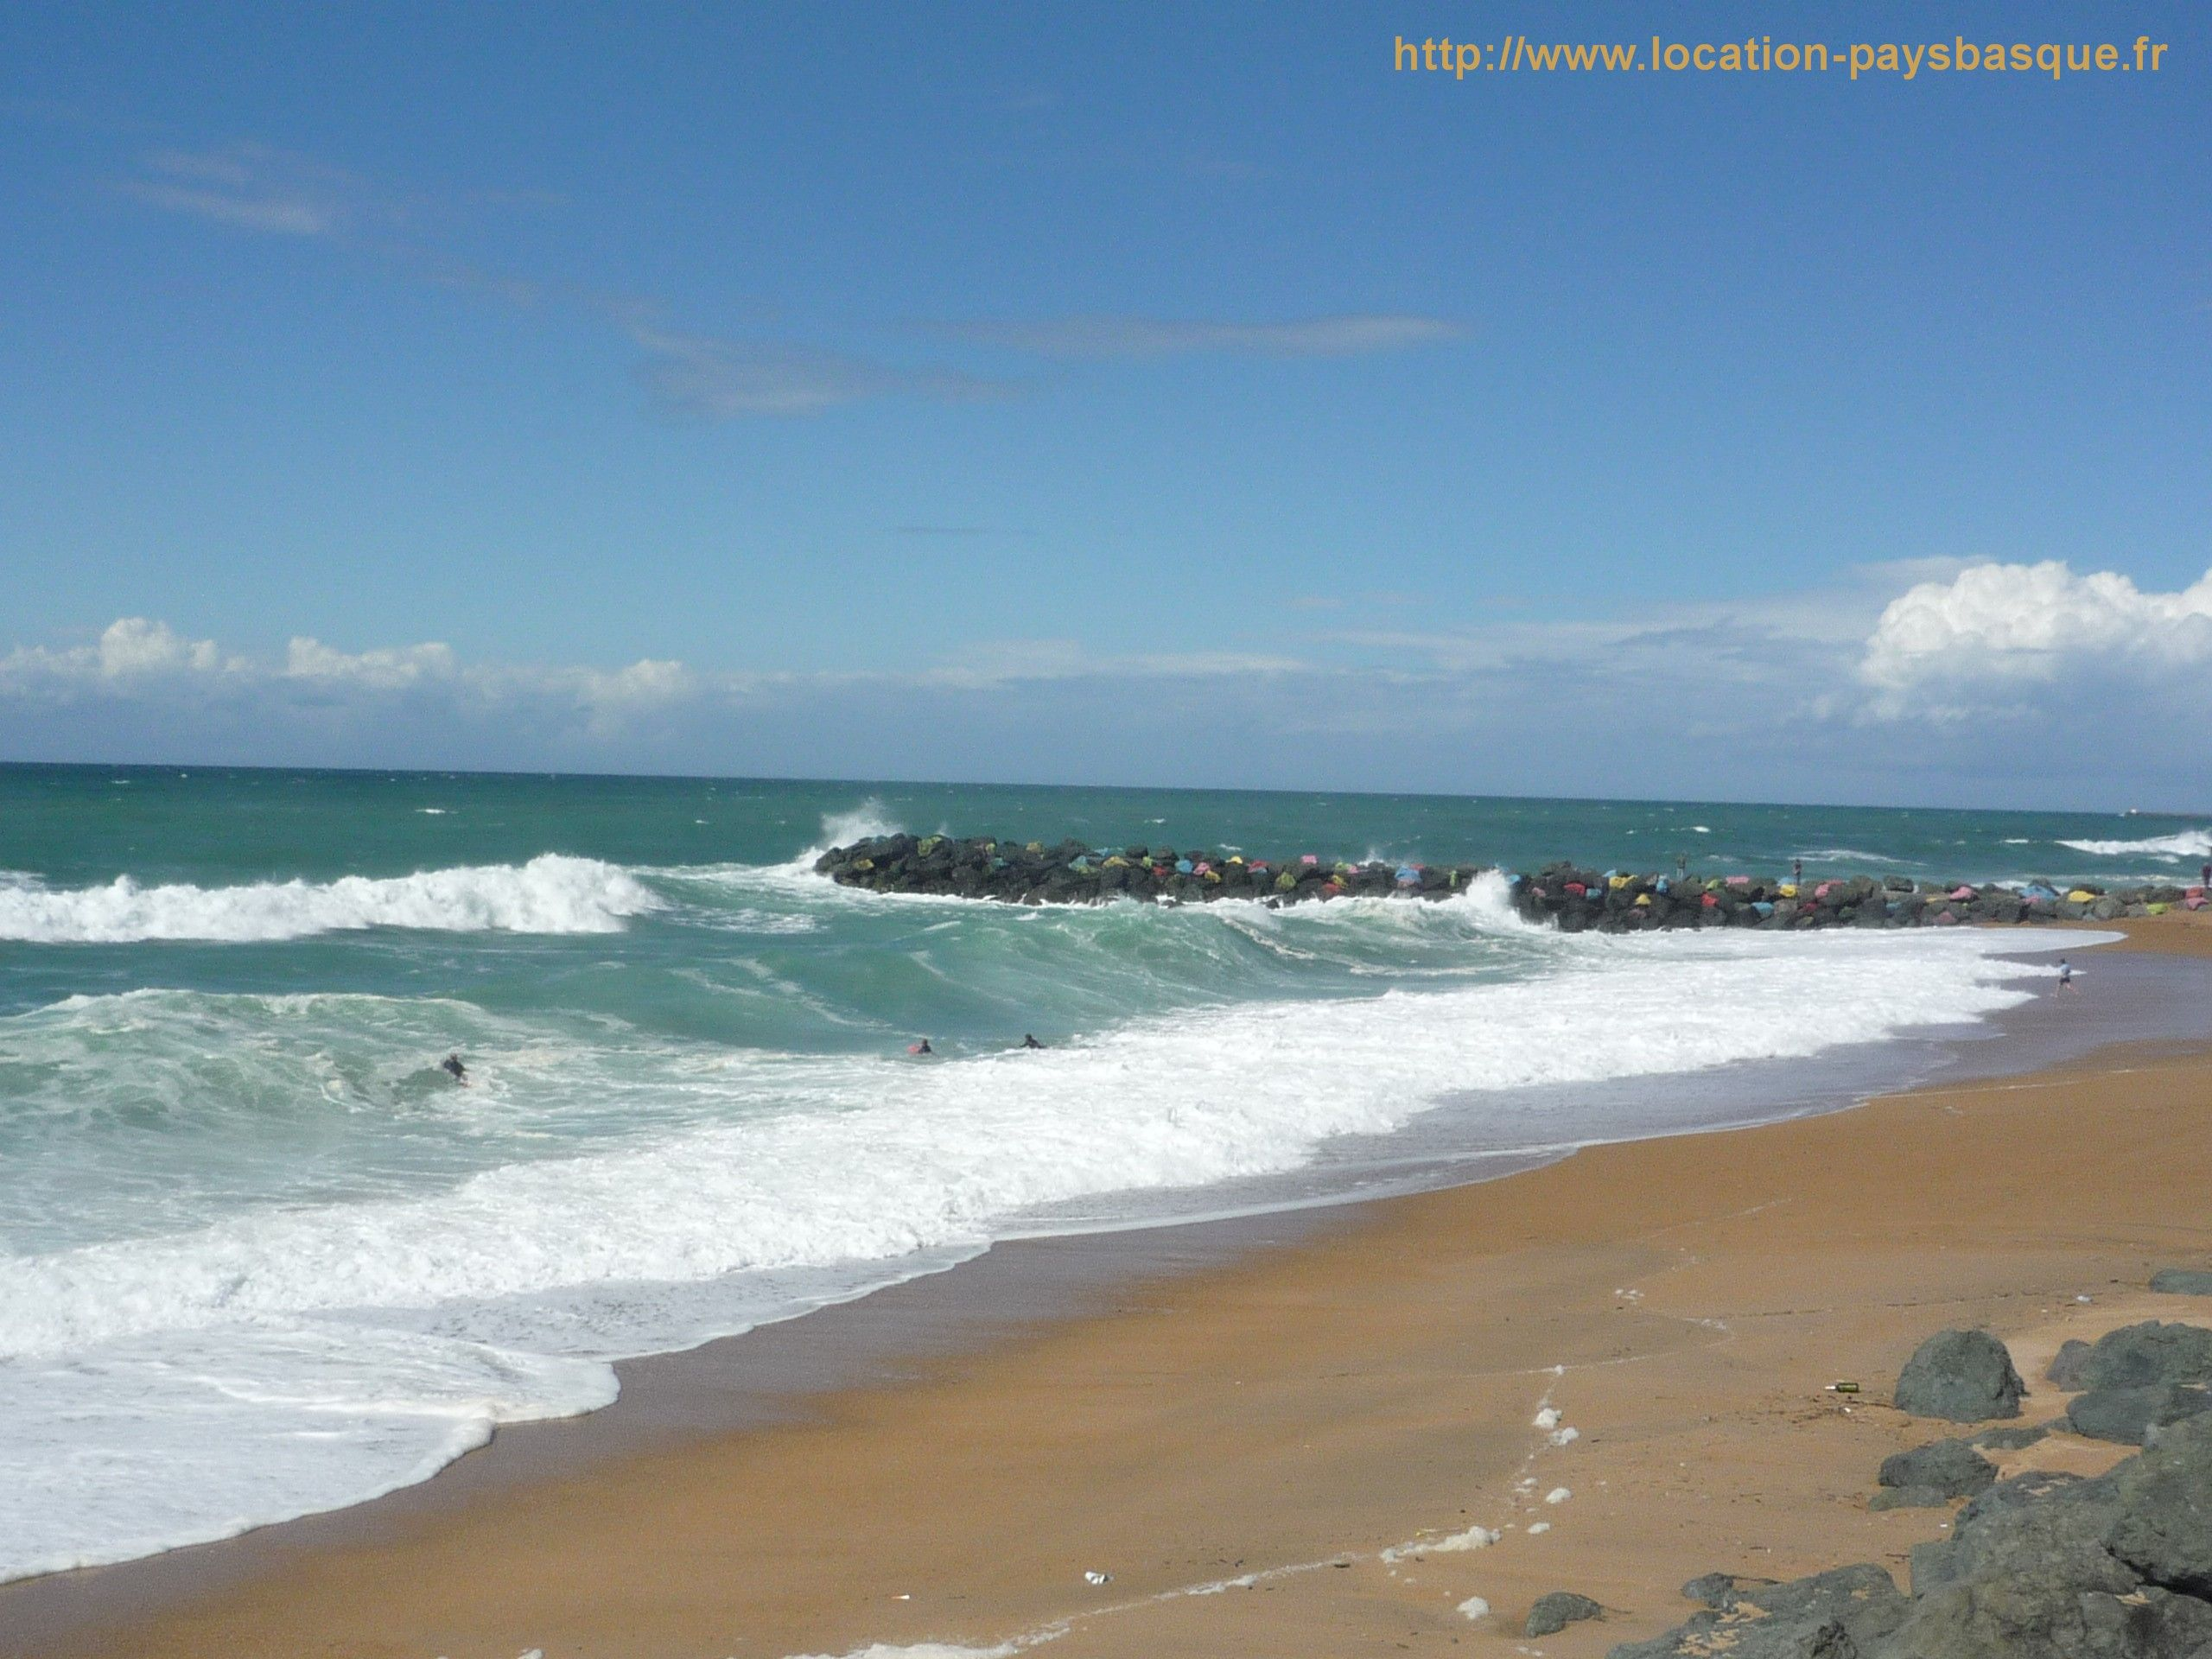 Plage Du Club Anglet Chambre D Amour Chambre D Amour Anglet Plage